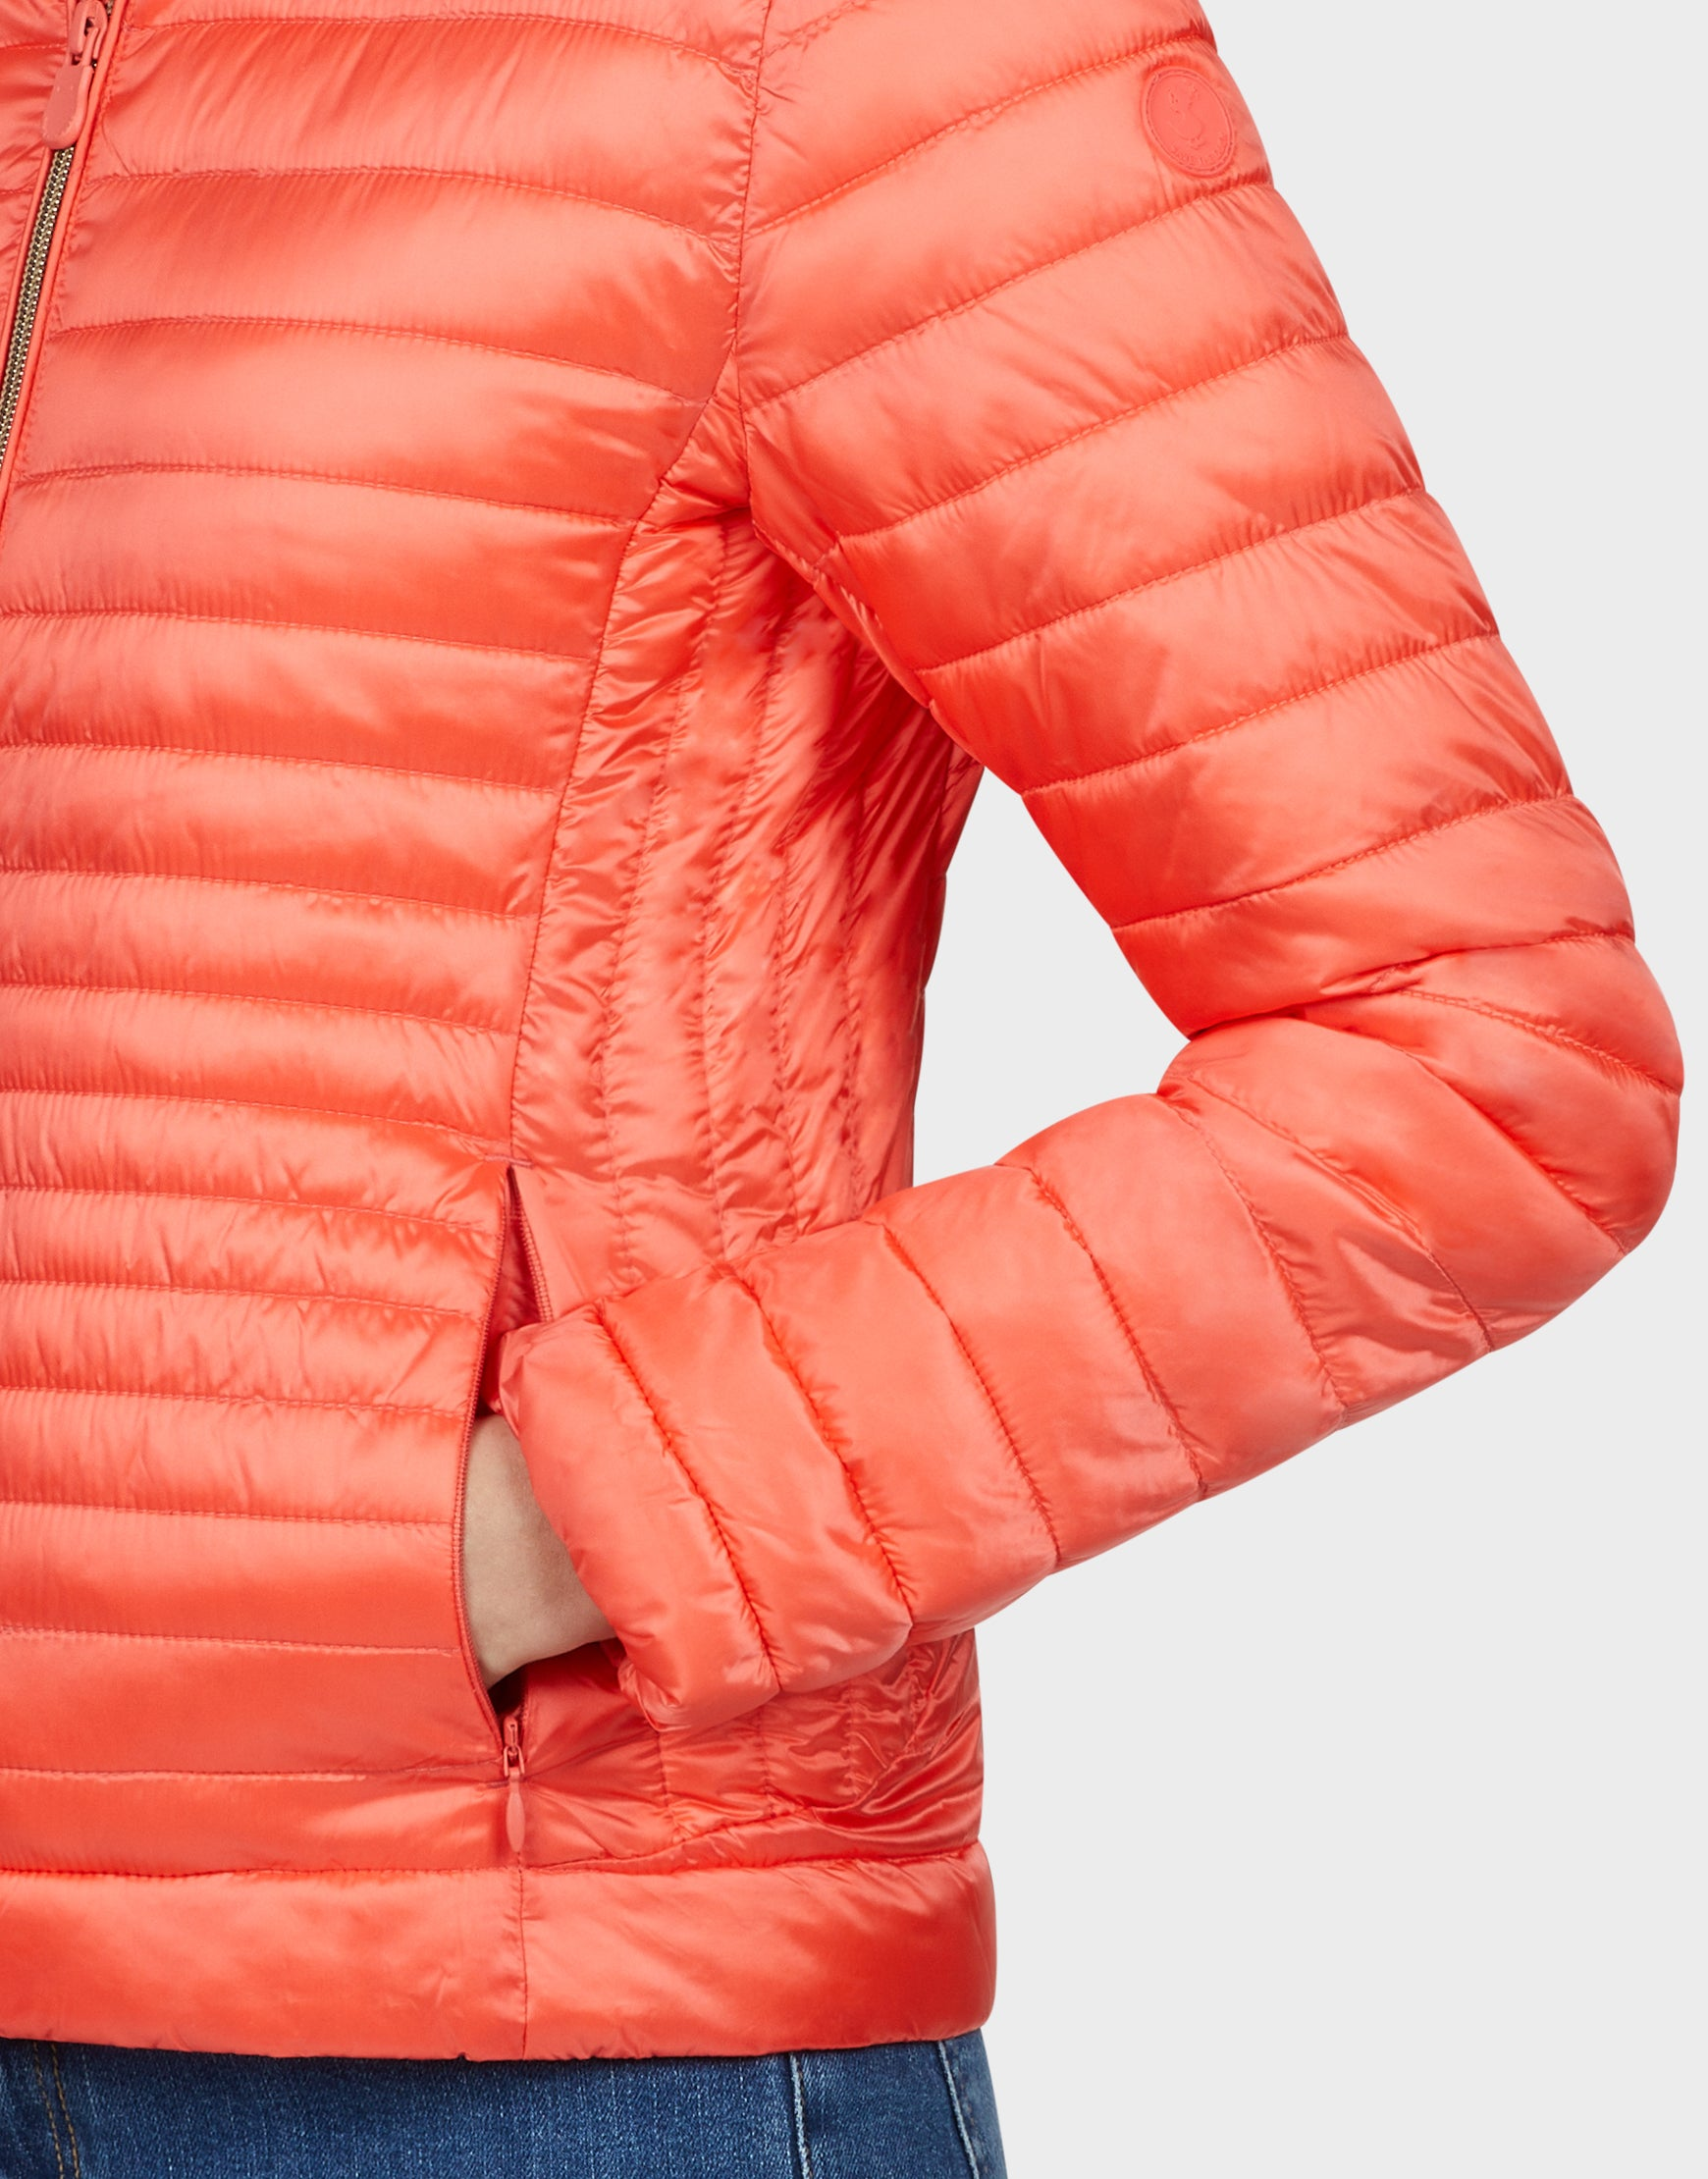 Womens IRIS Jacket in Coral Orange